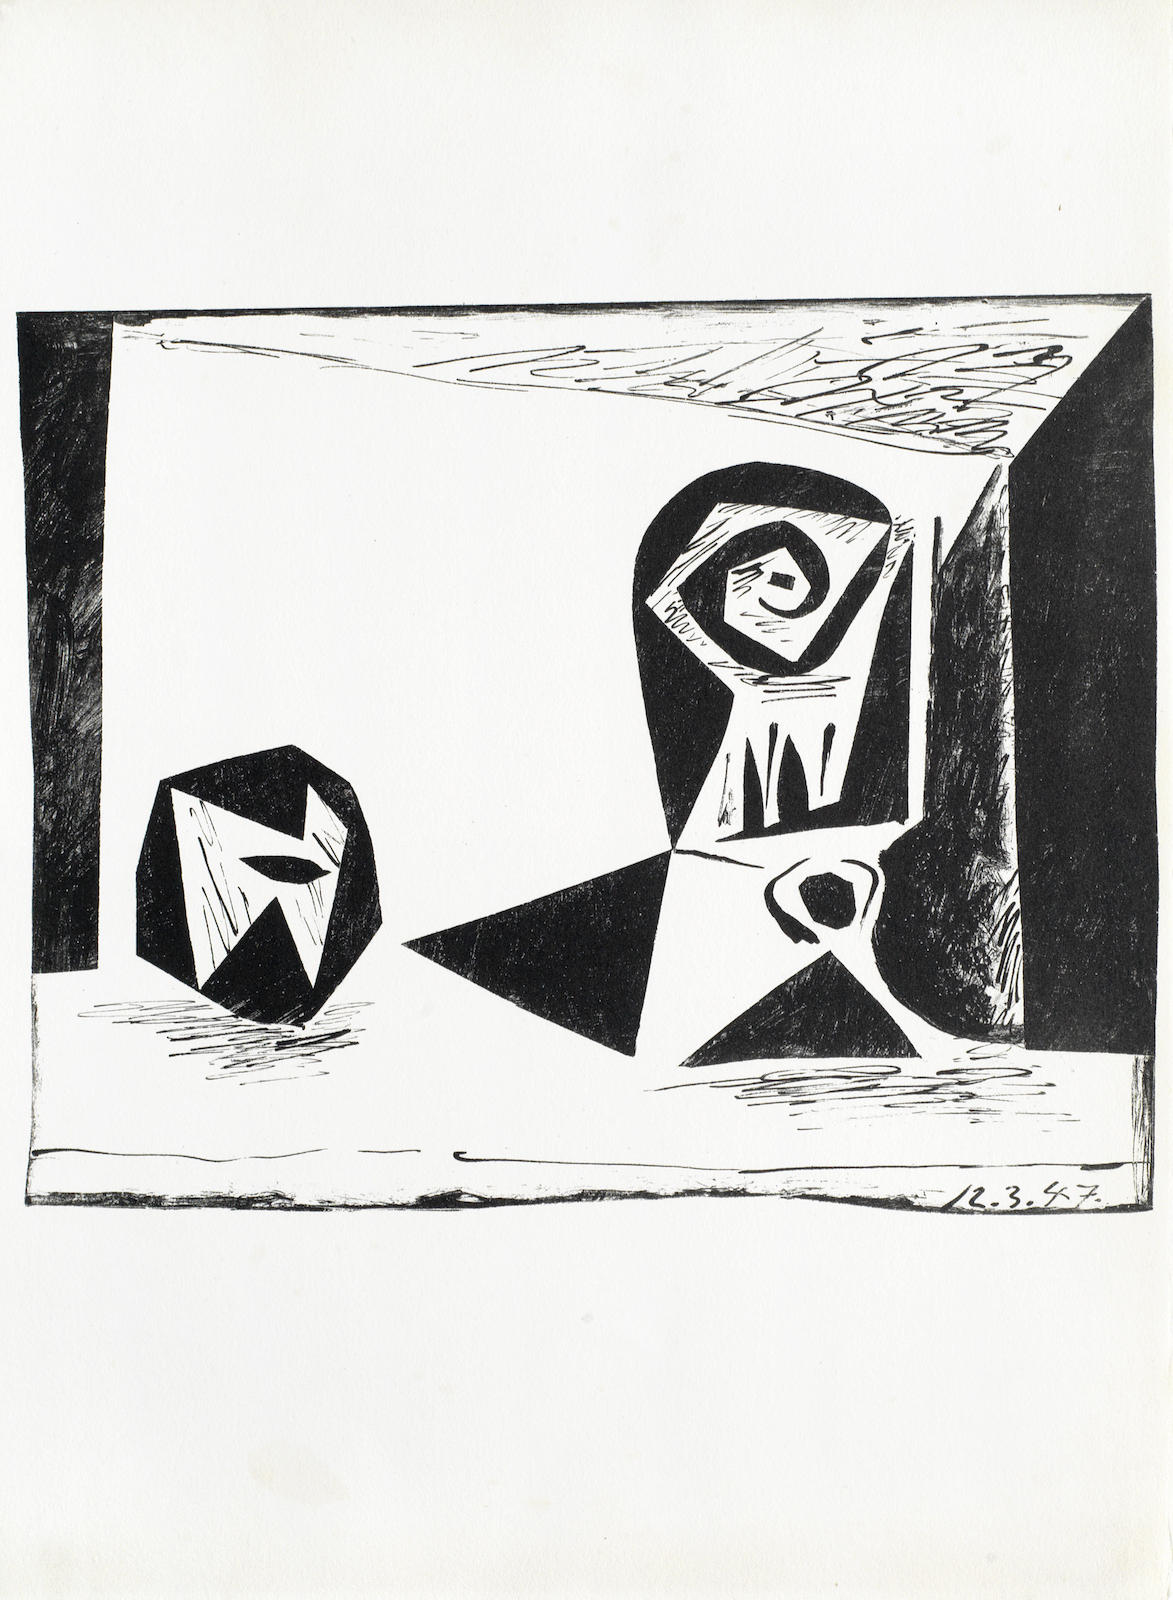 Pablo Picasso-A collection of Lithographs unframed (Composition au verre a pied, 45 Linoleums Graves, L'Homme a la Fraise, 'Nature Morte au Verre et a la Pomme)-1947